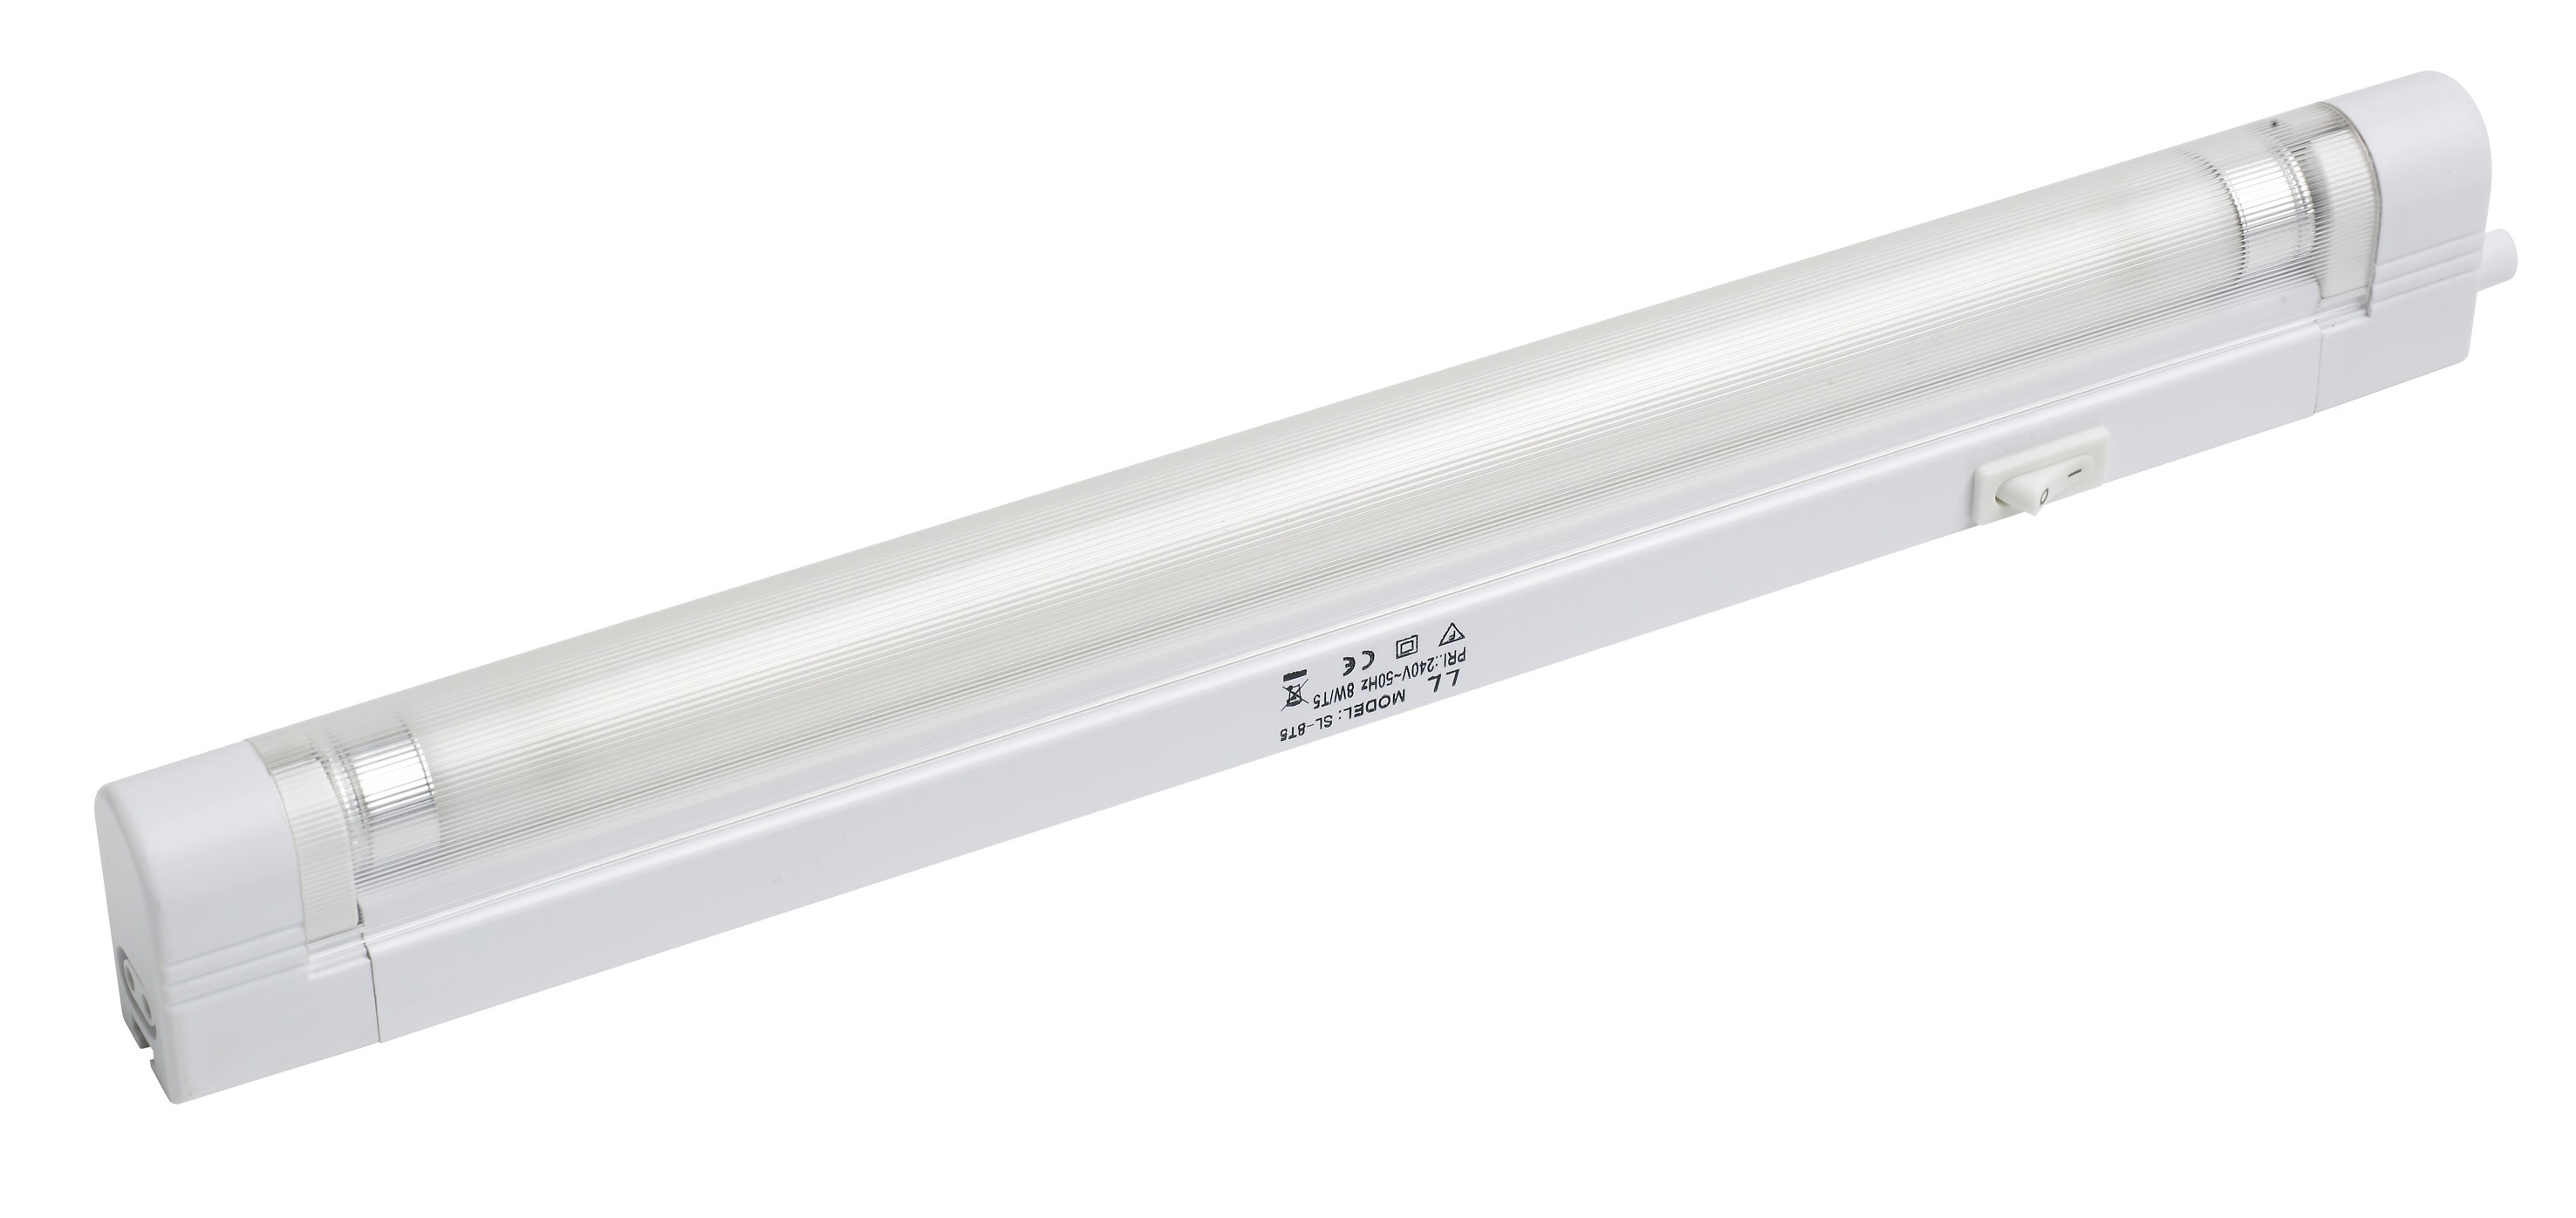 Slimline Fluorescent Under Cabinet Kitchen Light T5 In